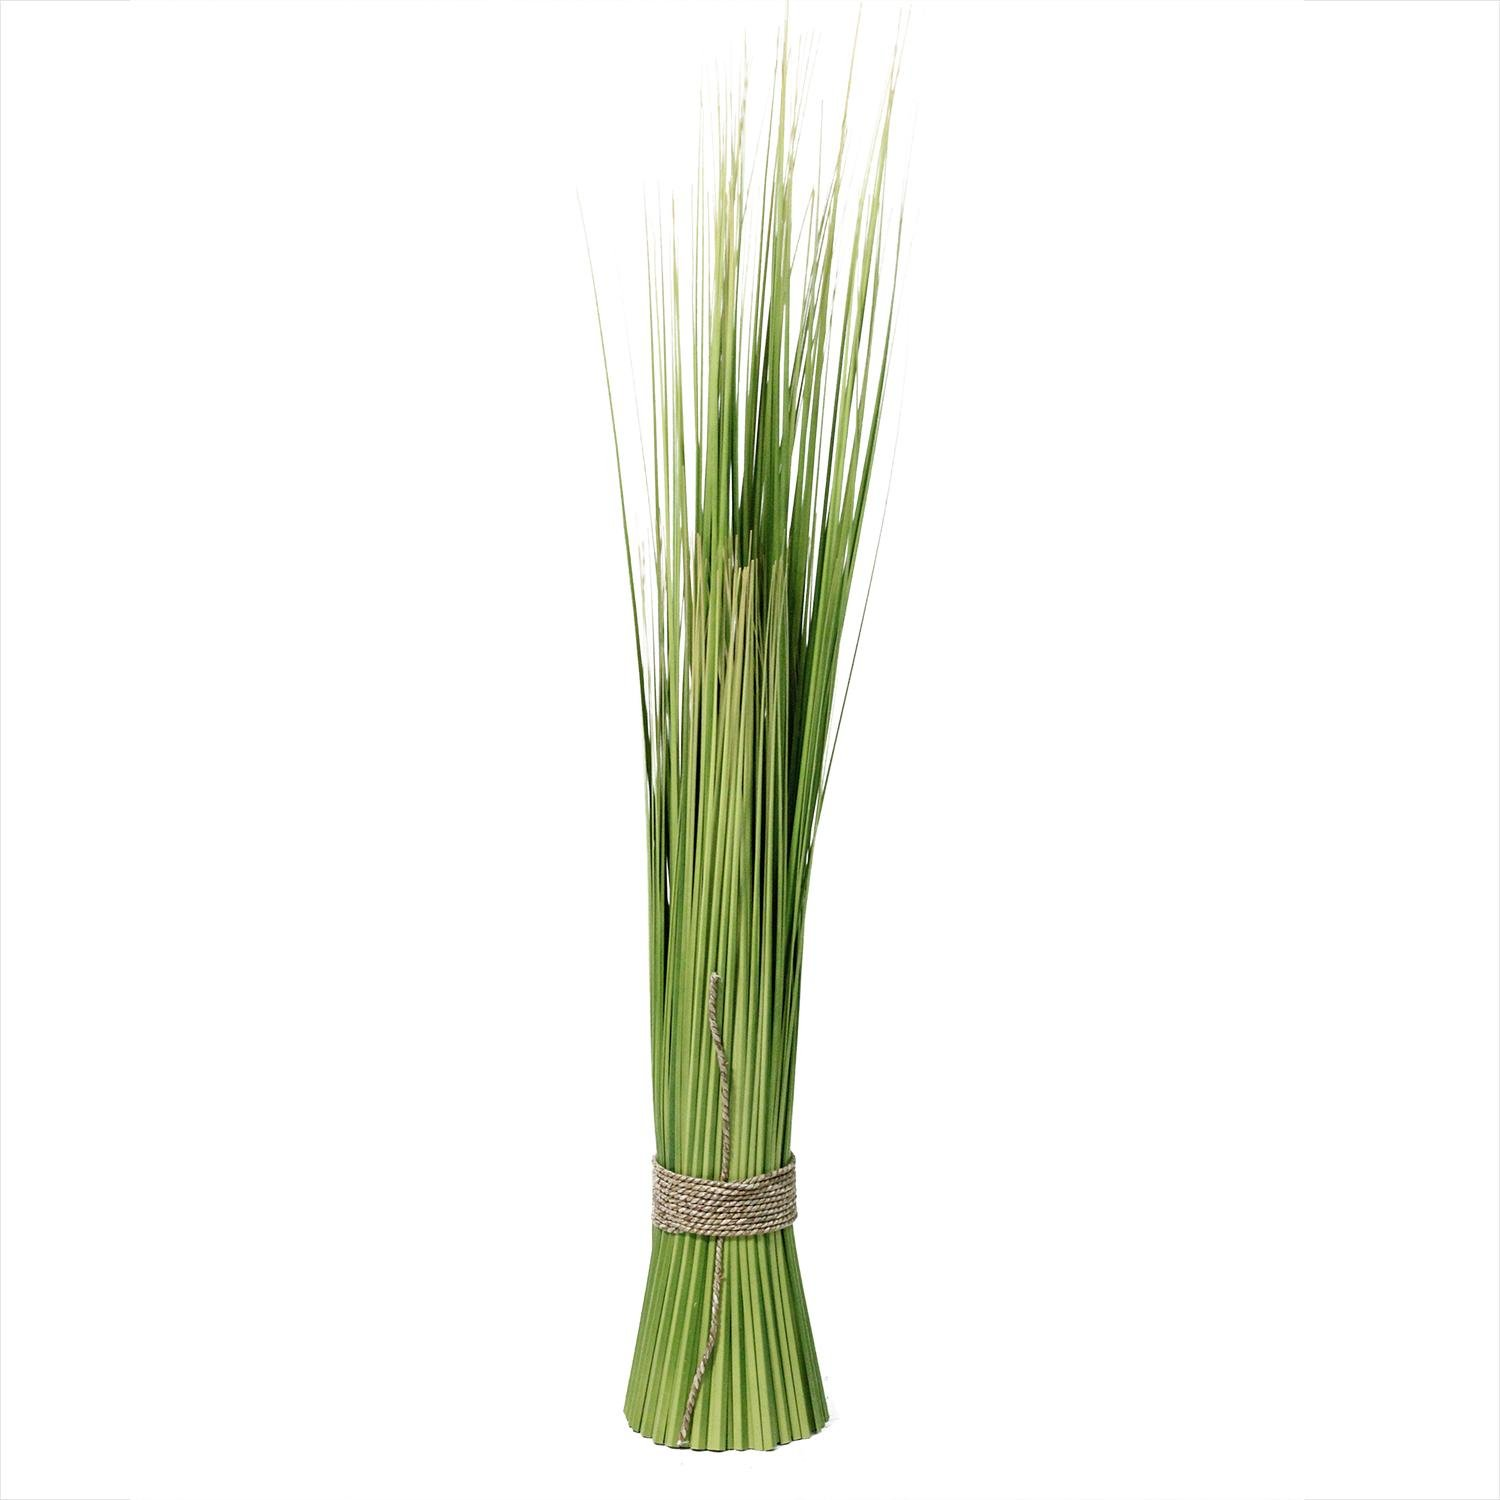 NorthLight 37.75 in. Green & Yellow Artificial Onion Grass Bundle Wrapped with Decorative Tan Rope B01CWFY5ZG